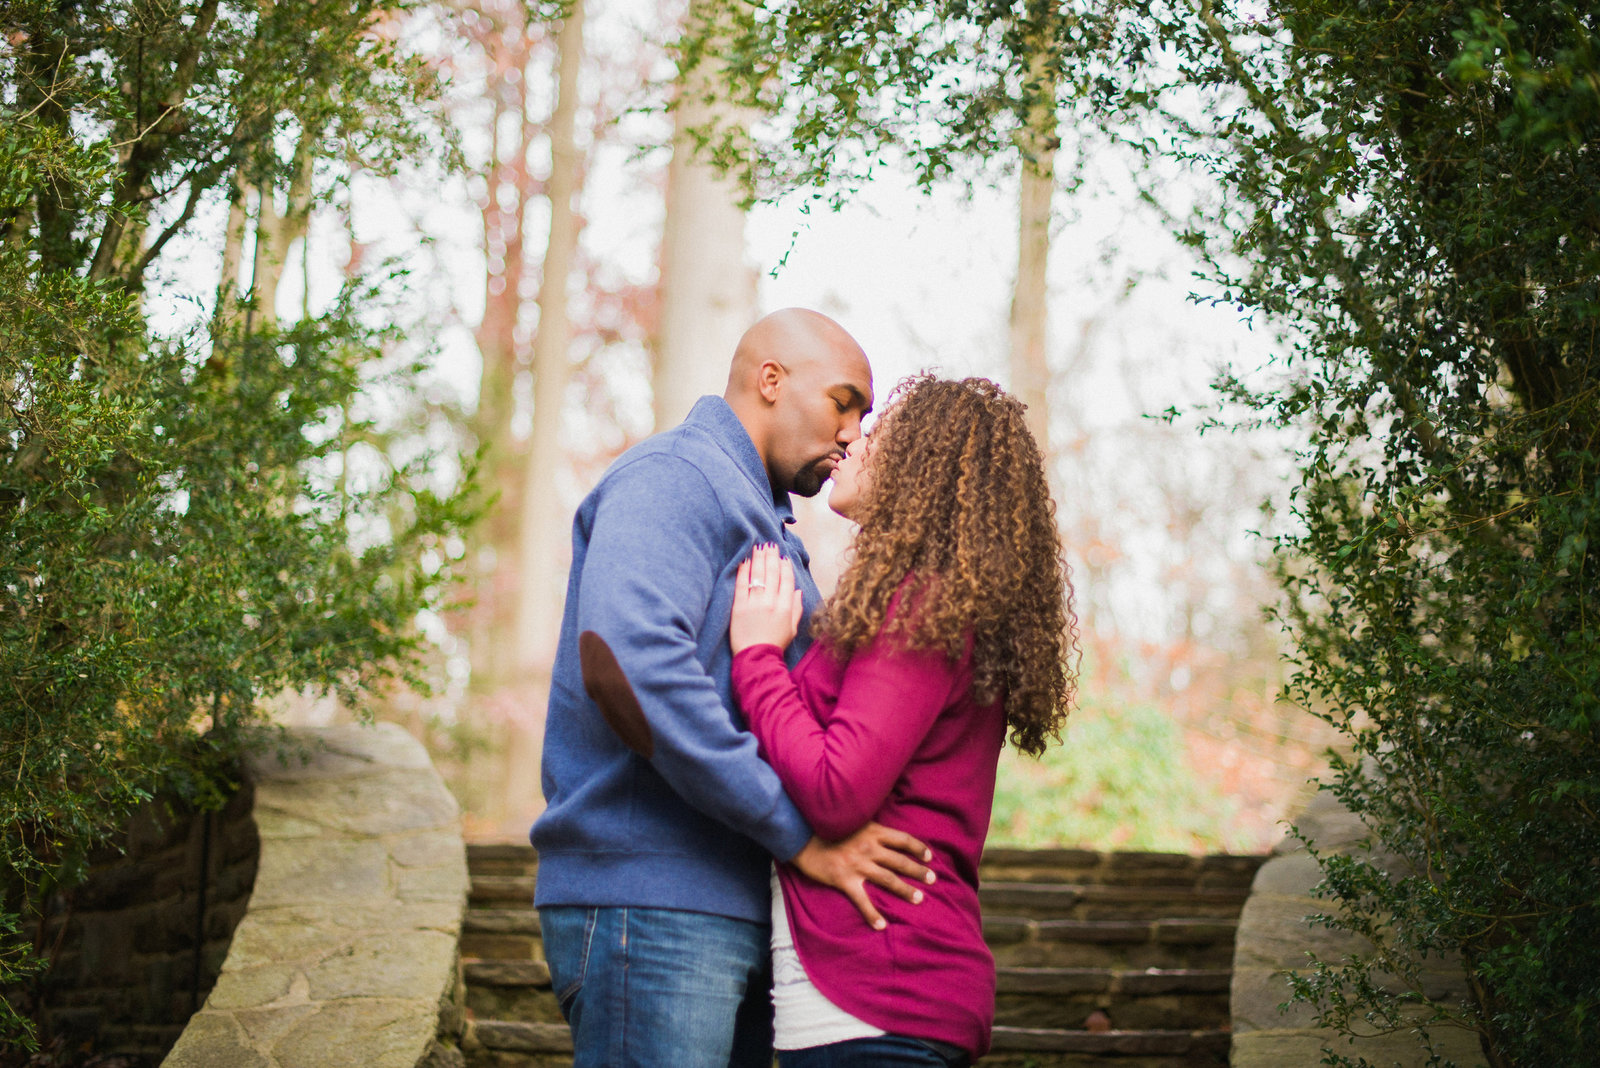 Longwood_Engagement_Photography022